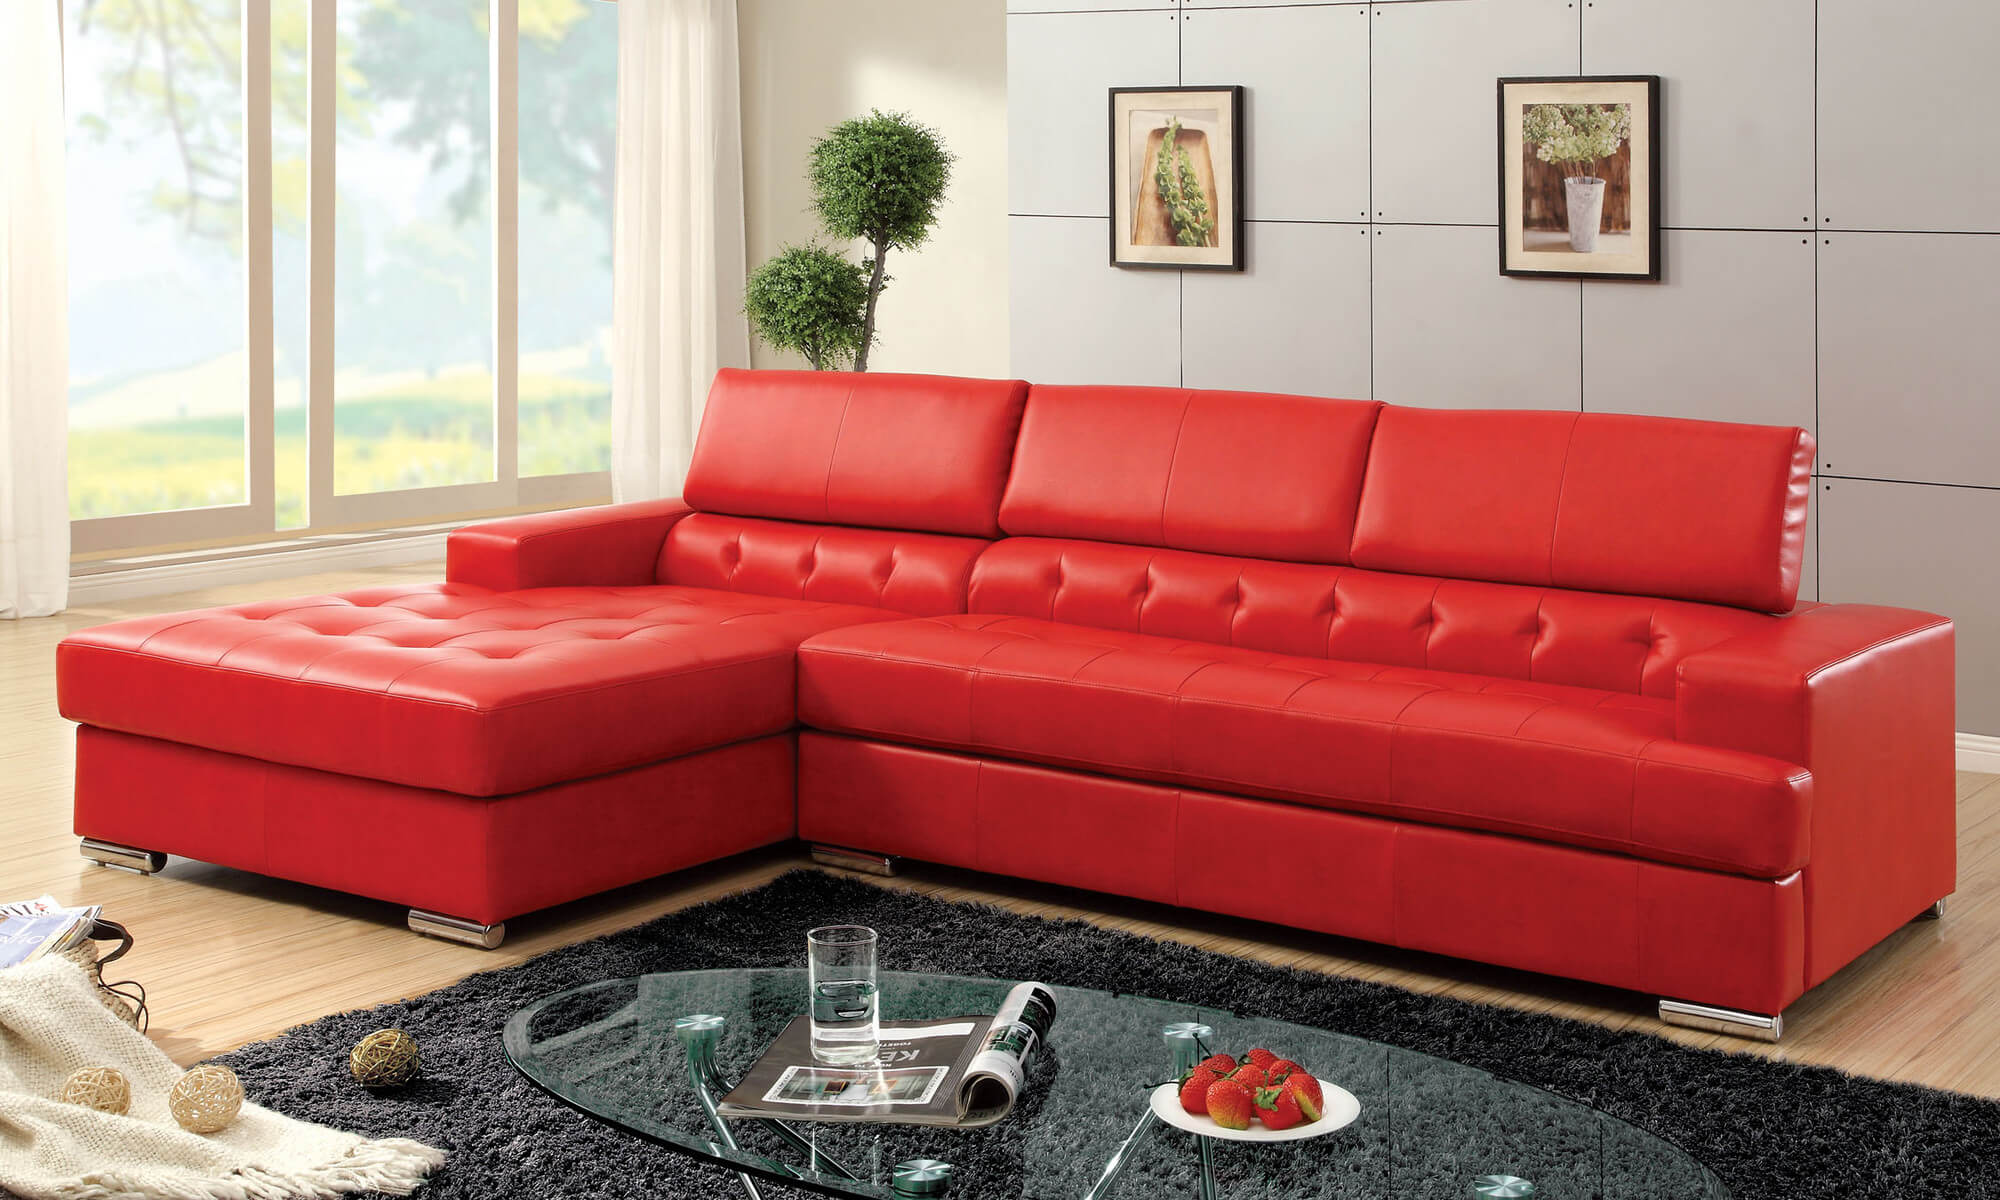 Hokku Designs Red Leather Sectional with Partially Tufted Upholstery. Hokku  is well-known for very stylish modern furniture